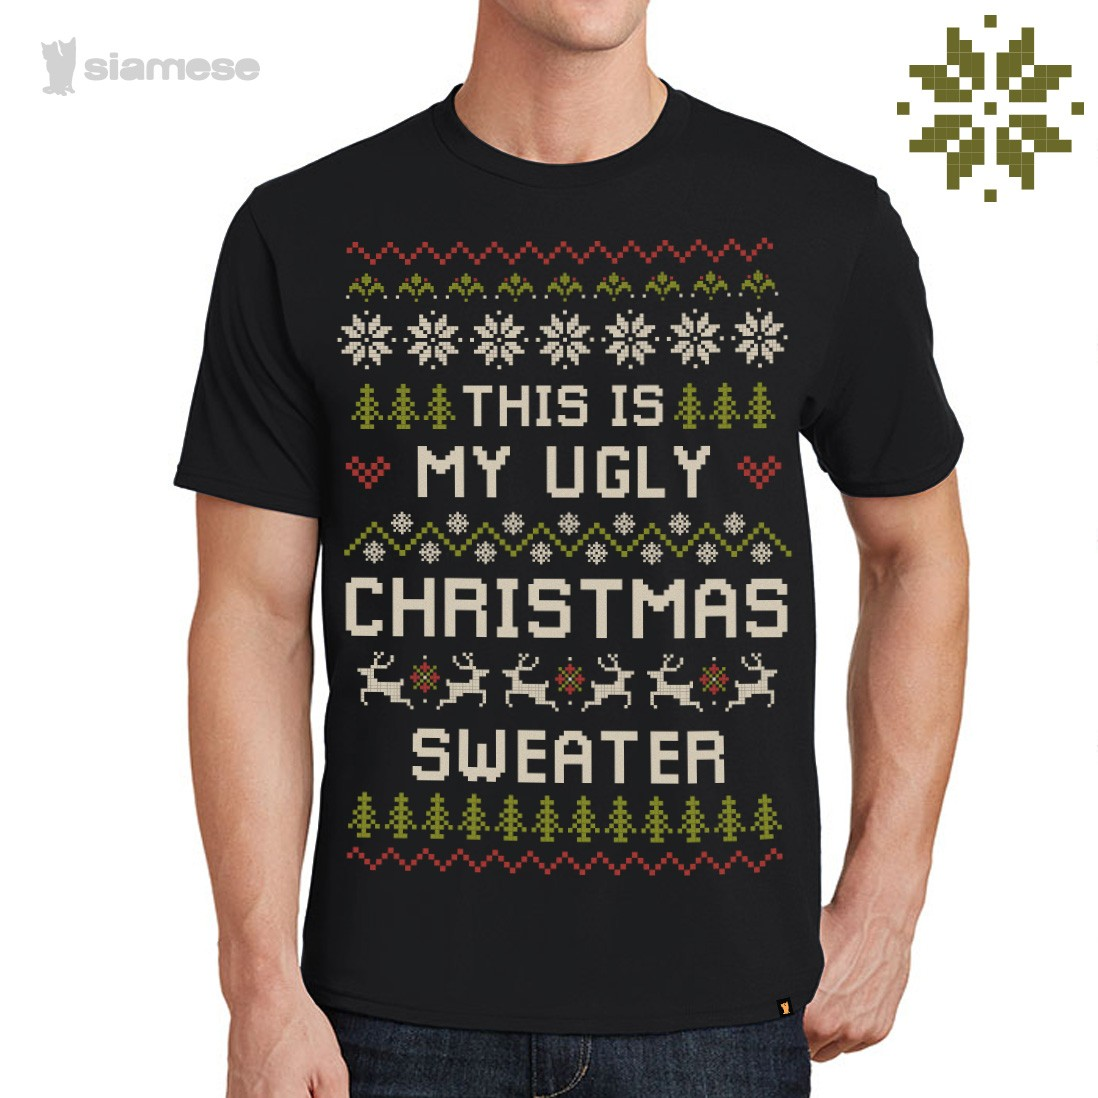 CAMISETA NATAL SIAMESE - MY UGLY CHRISTMAS SWEATER